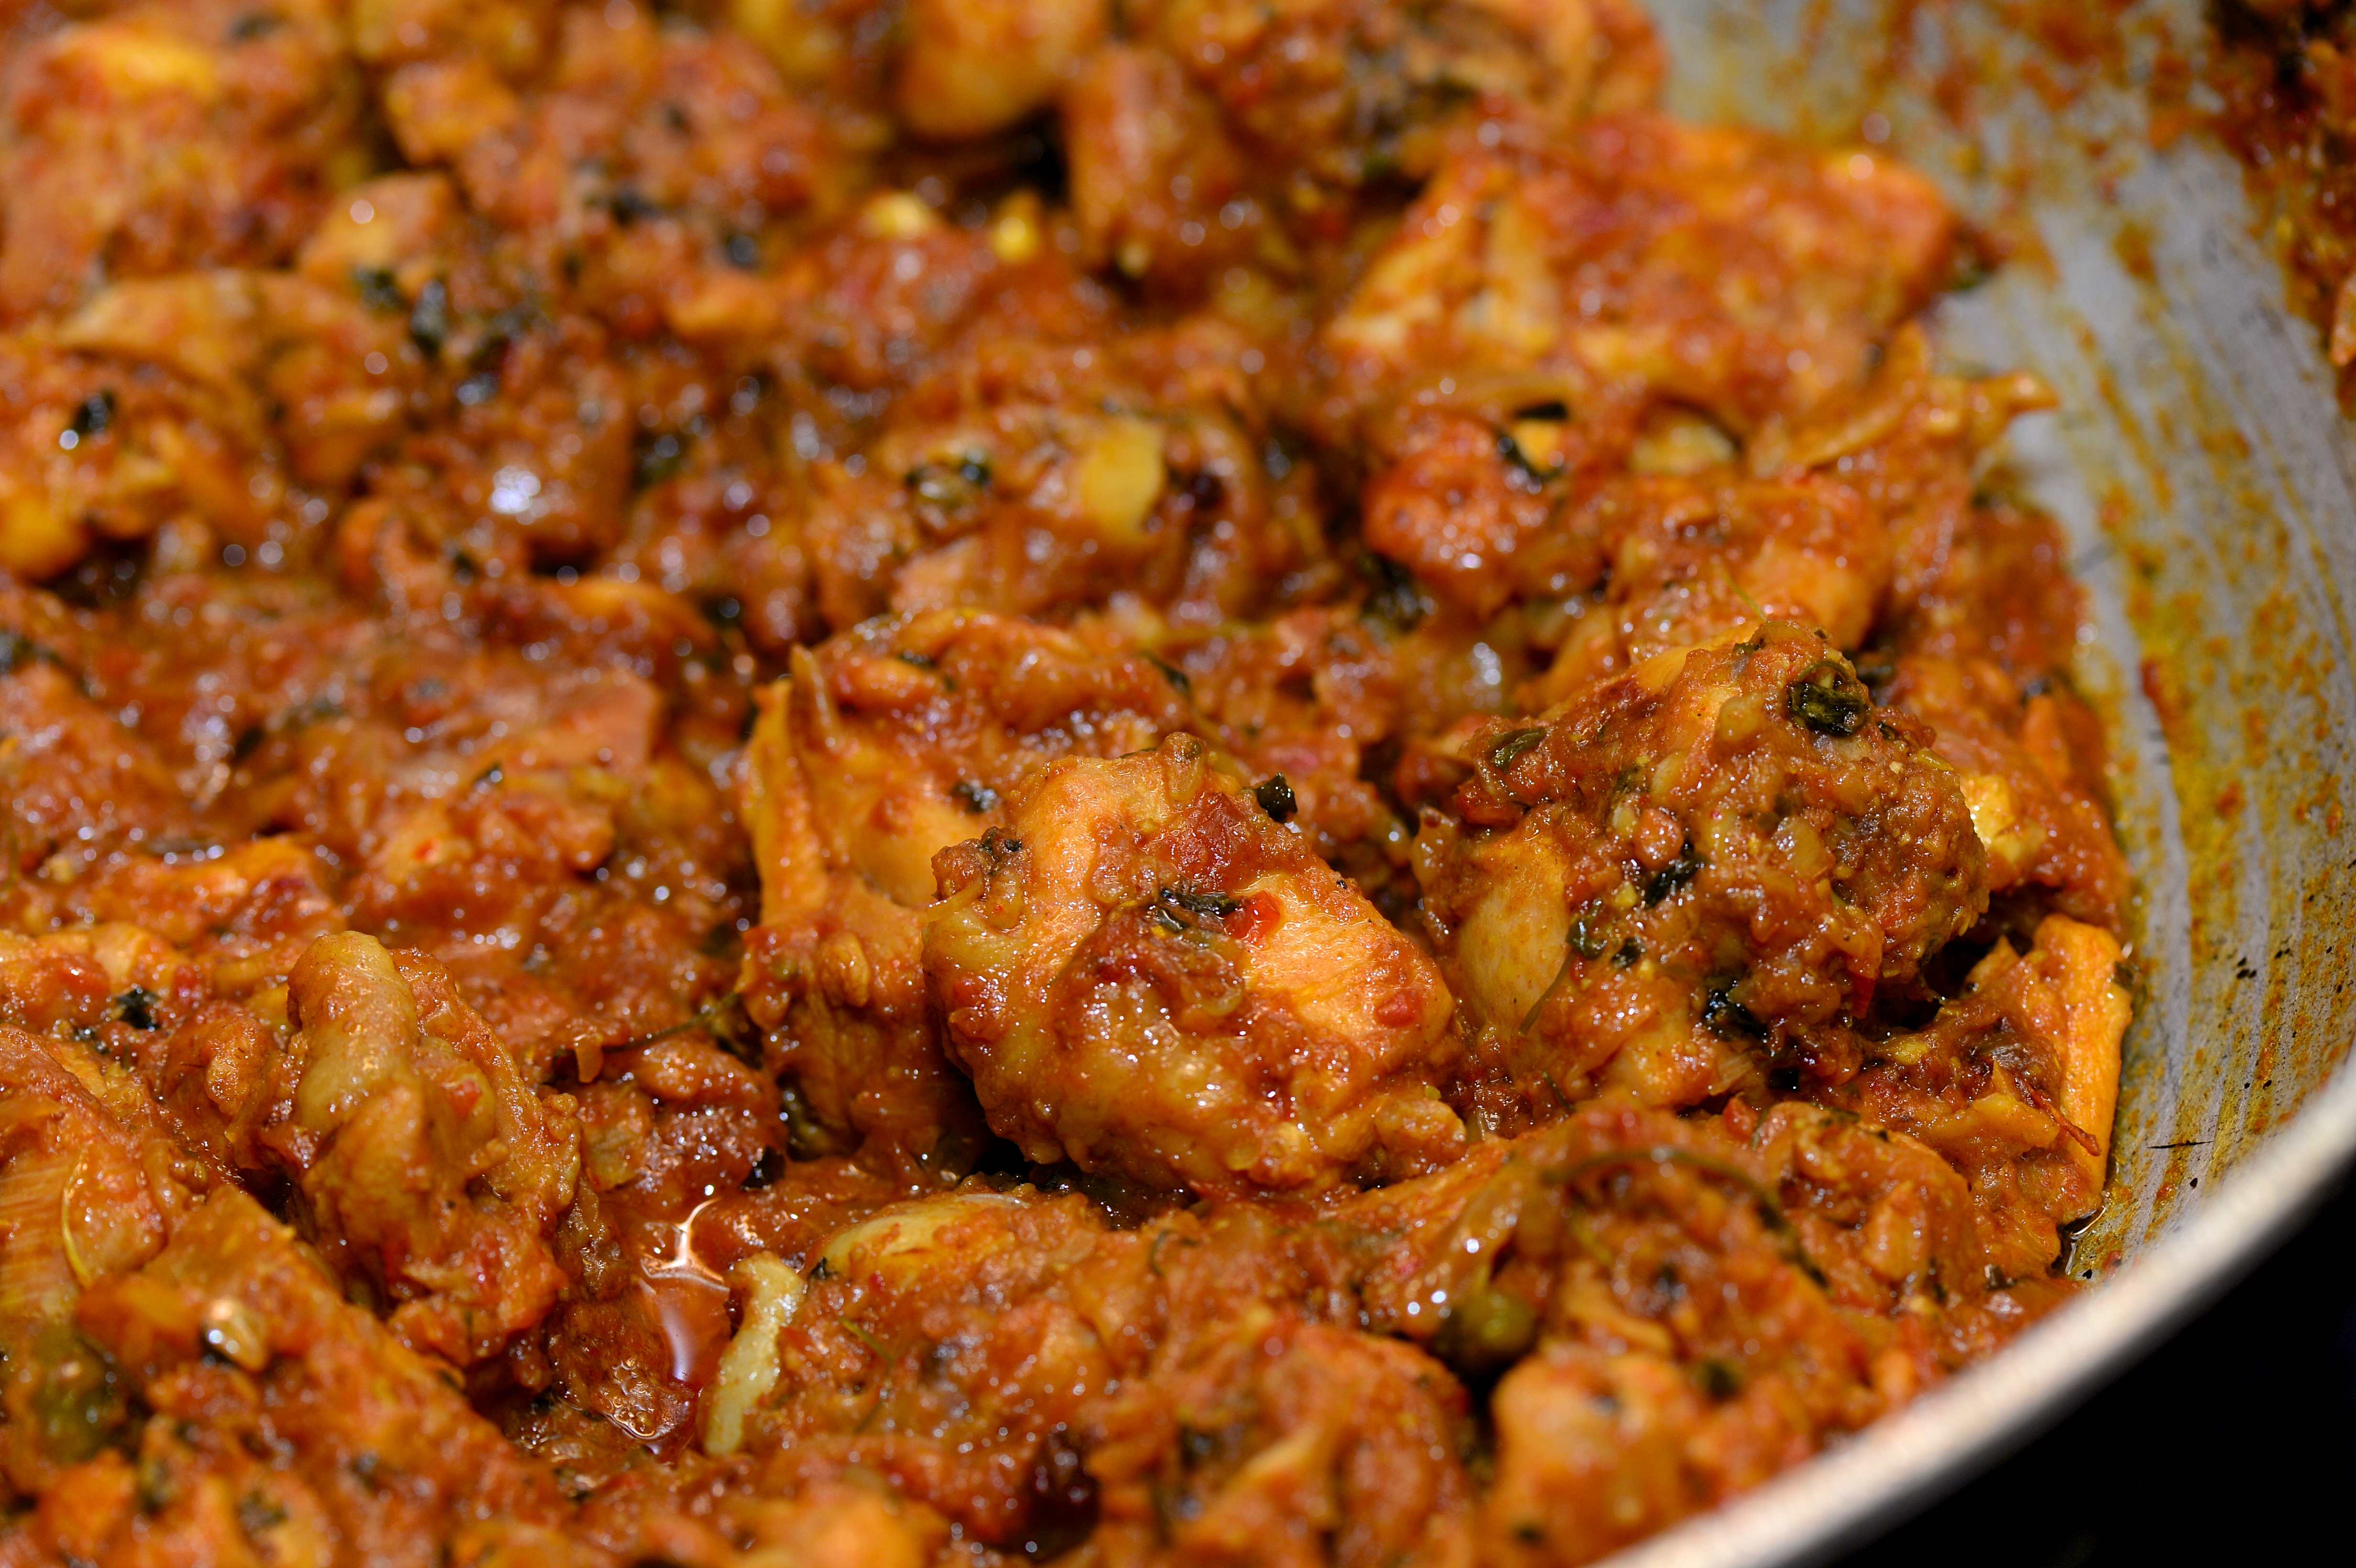 Recipe dry indian chicken curry the restaurant fairys kitchen yoz9241 forumfinder Choice Image